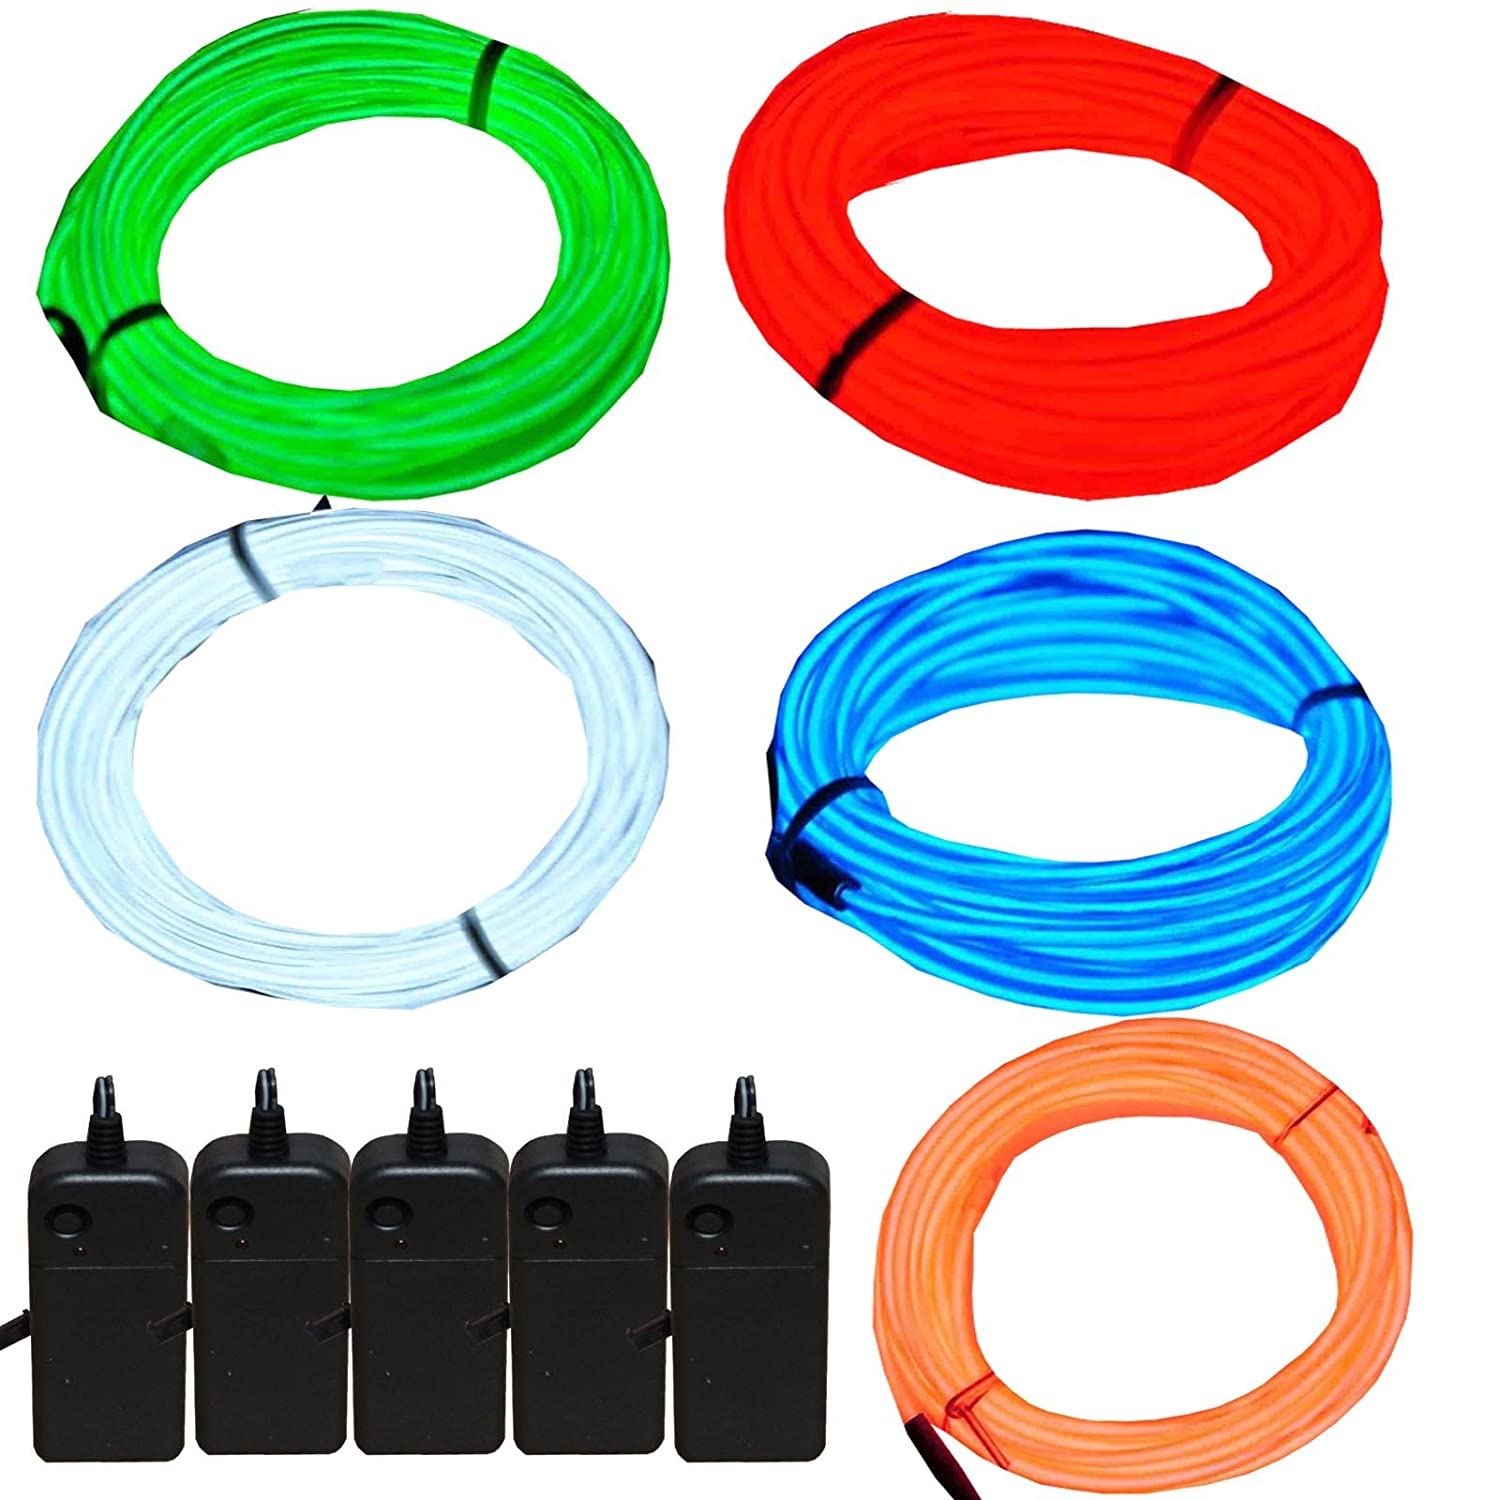 Amazon.com: 5 Pack - Jytrend 9ft Neon Light El Wire w/ Battery Pack ...